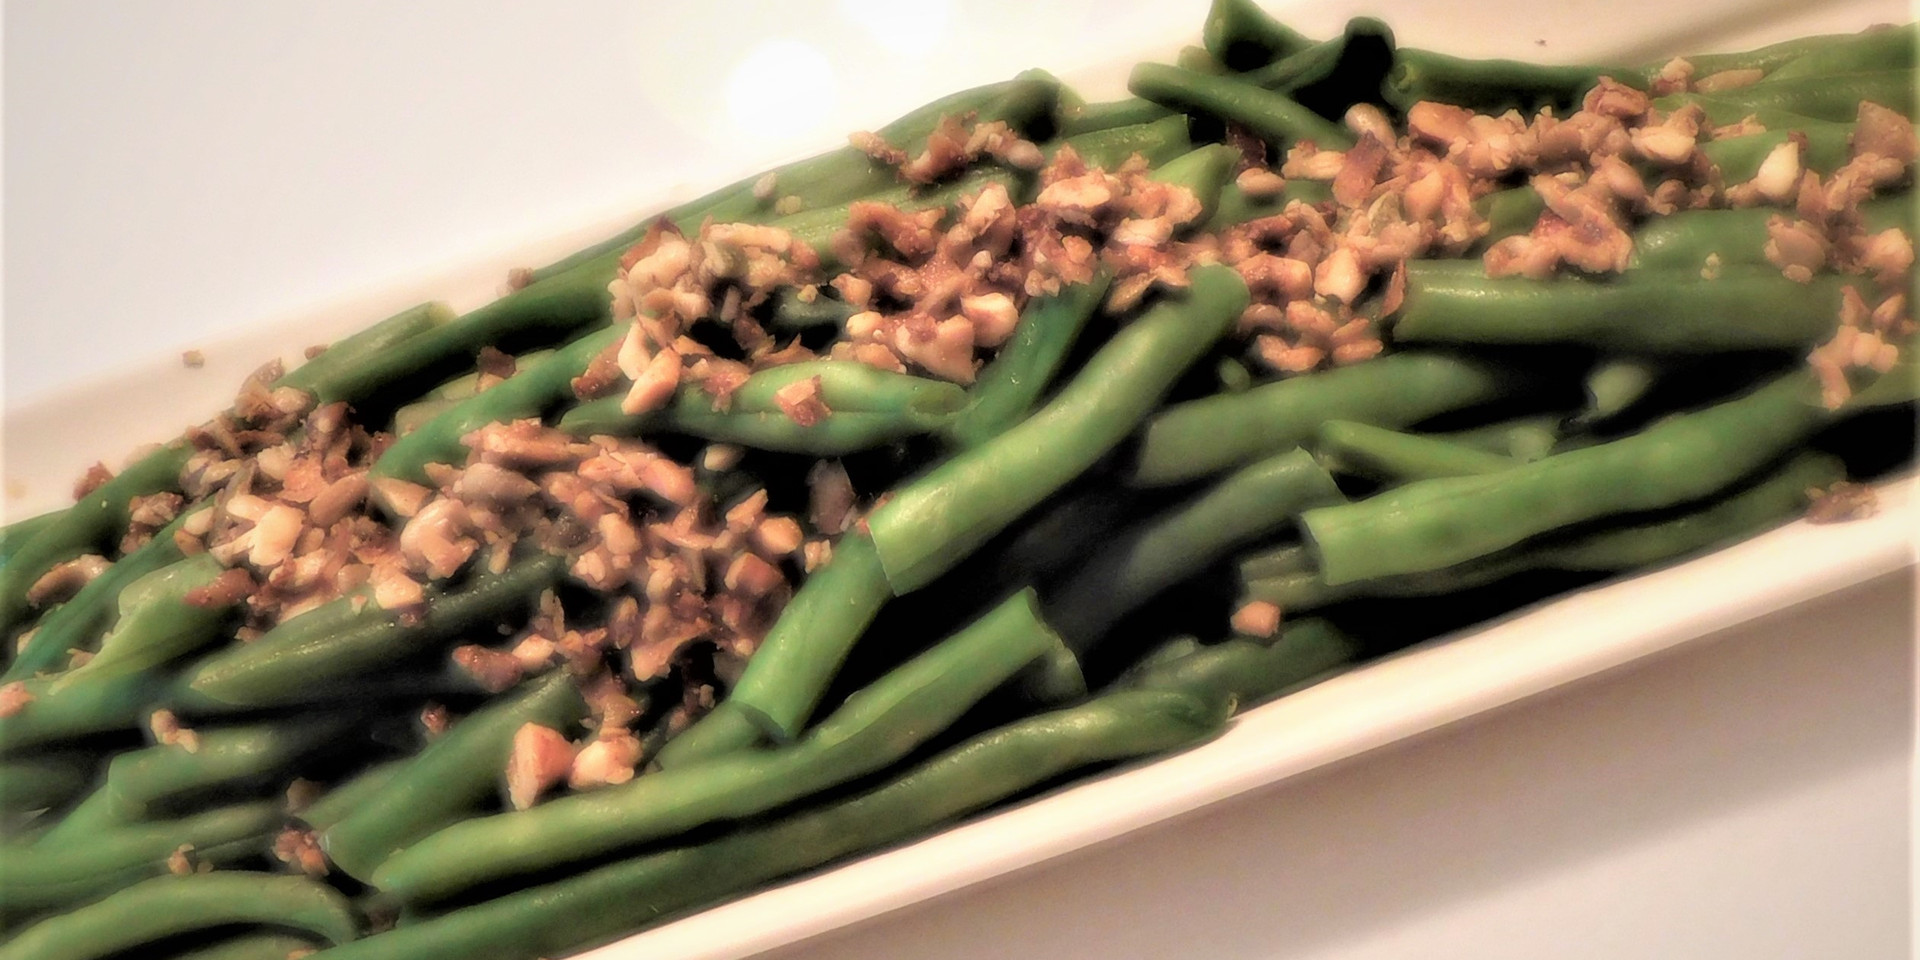 Clean Crunch on Green Beans